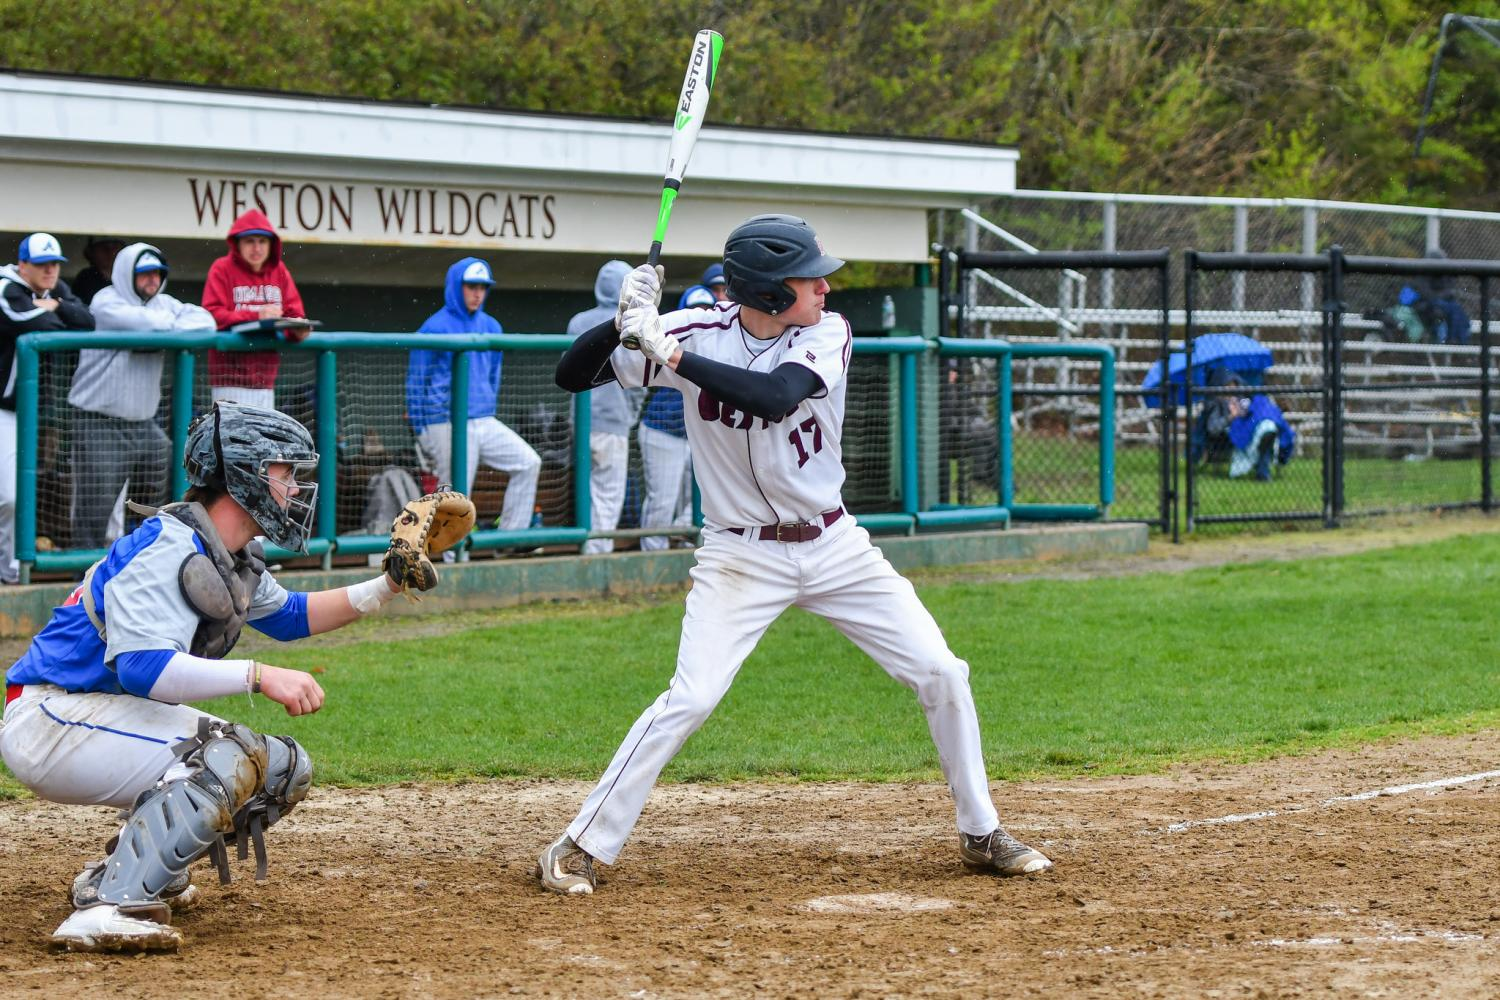 Senior Max Barsamian hit a three run home run against Ashland. PHOTO//Lee McCanne